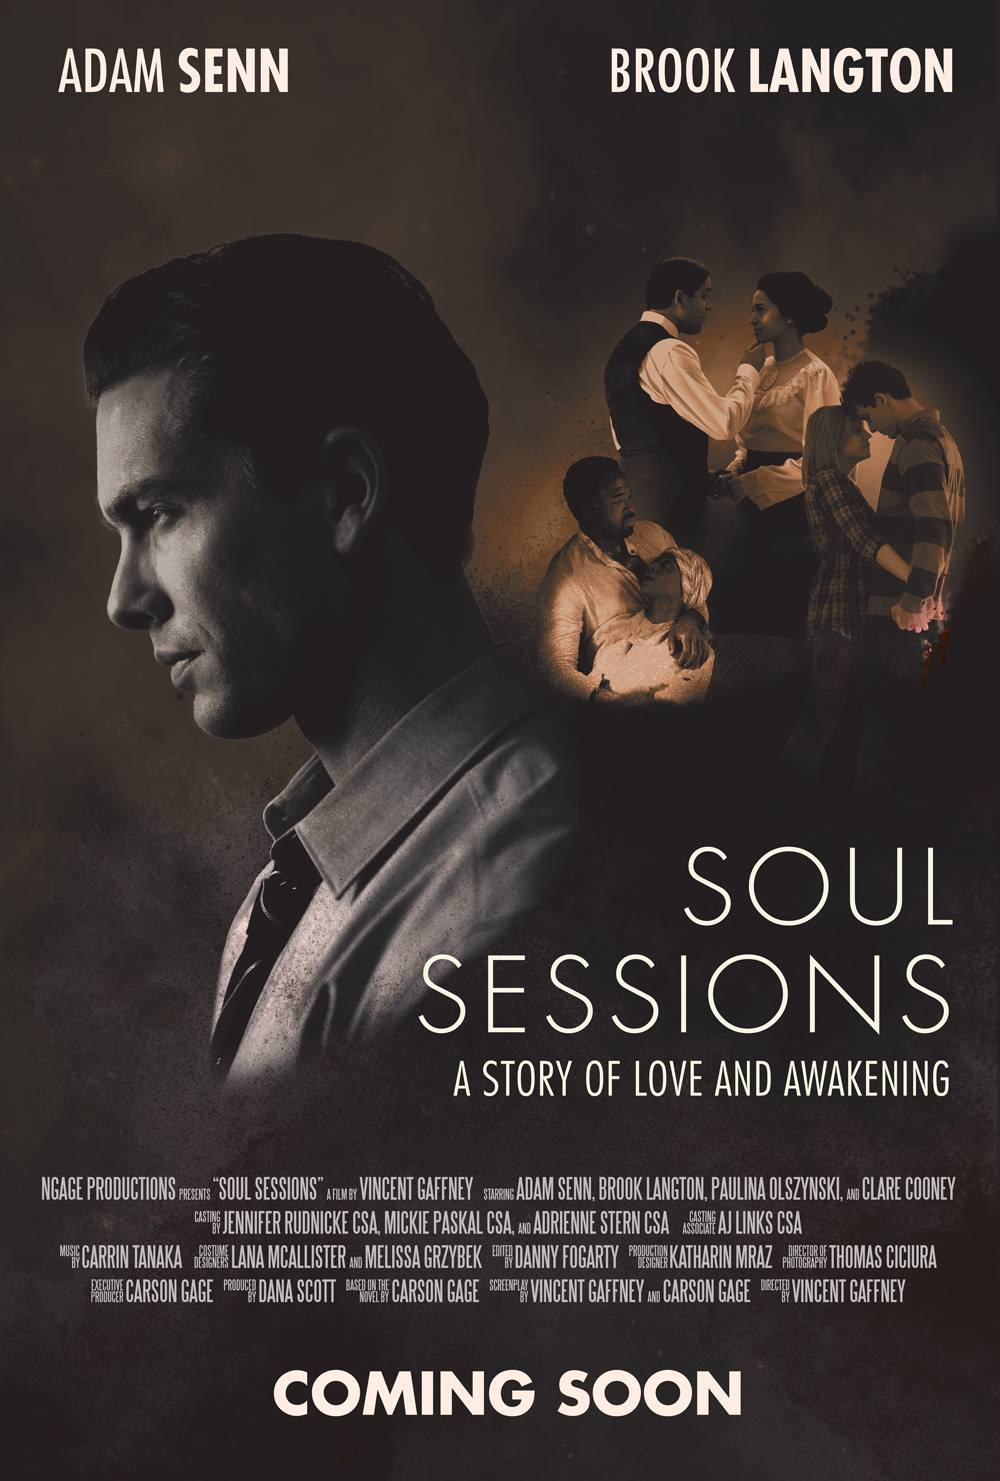 Clare played the role of 'Janice' in the independent Chicago feature film SOUL SESSIONS. Now in post.